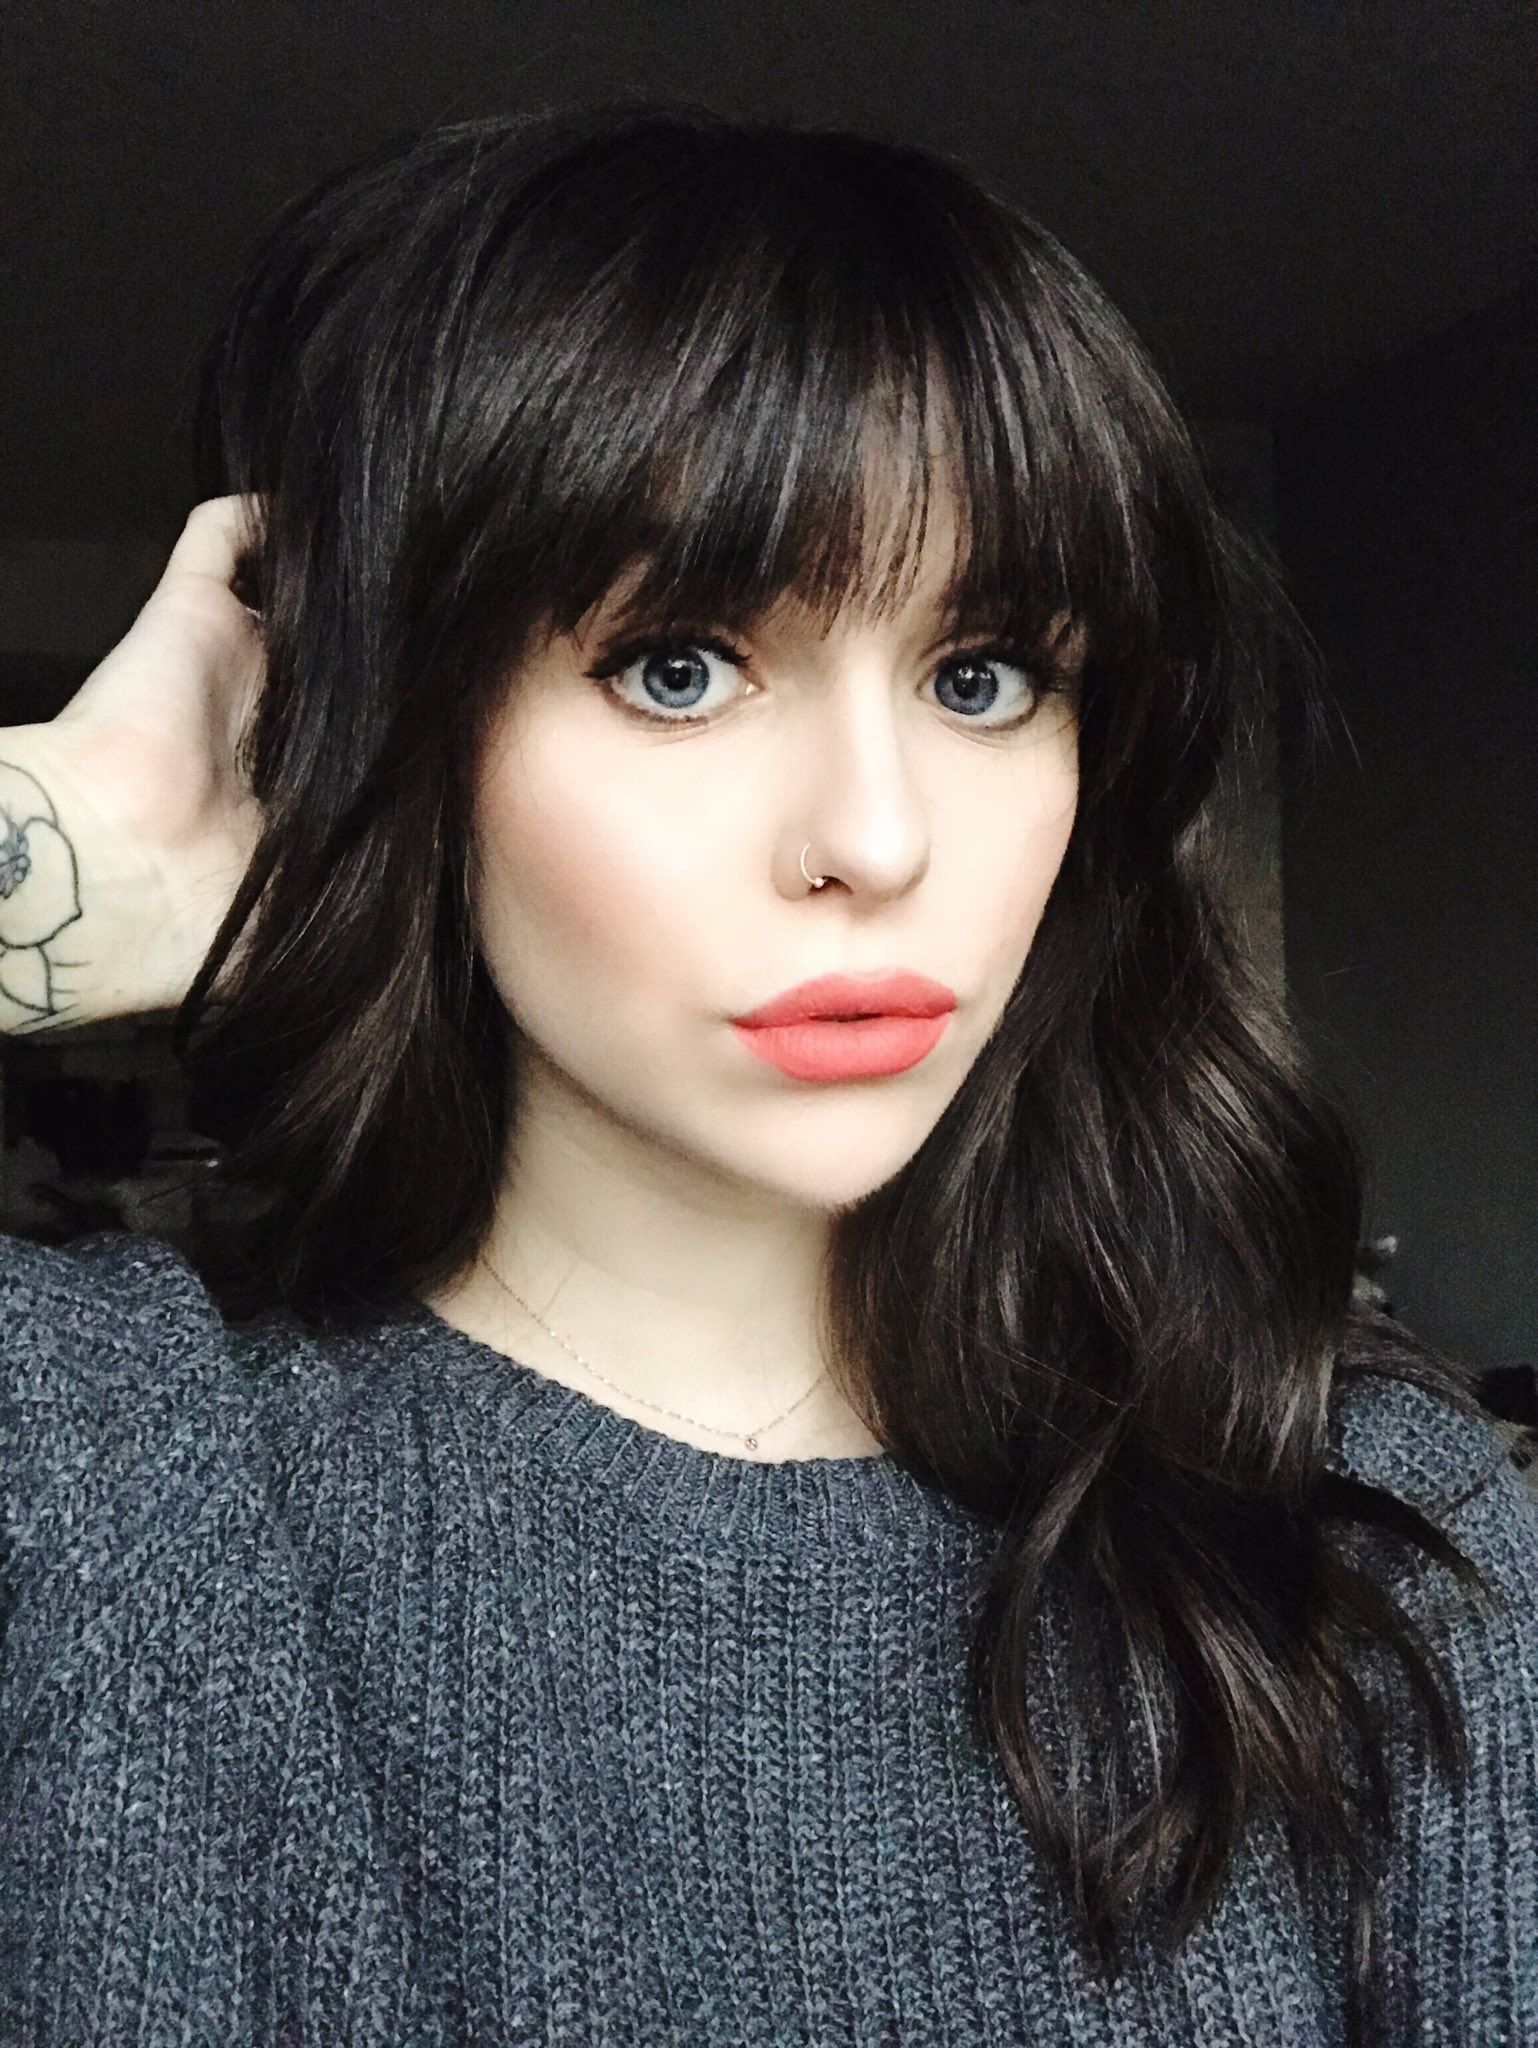 Coiffure Cheveux Long Brun Acacia Kersey On En 2019 H A I R Pinterest